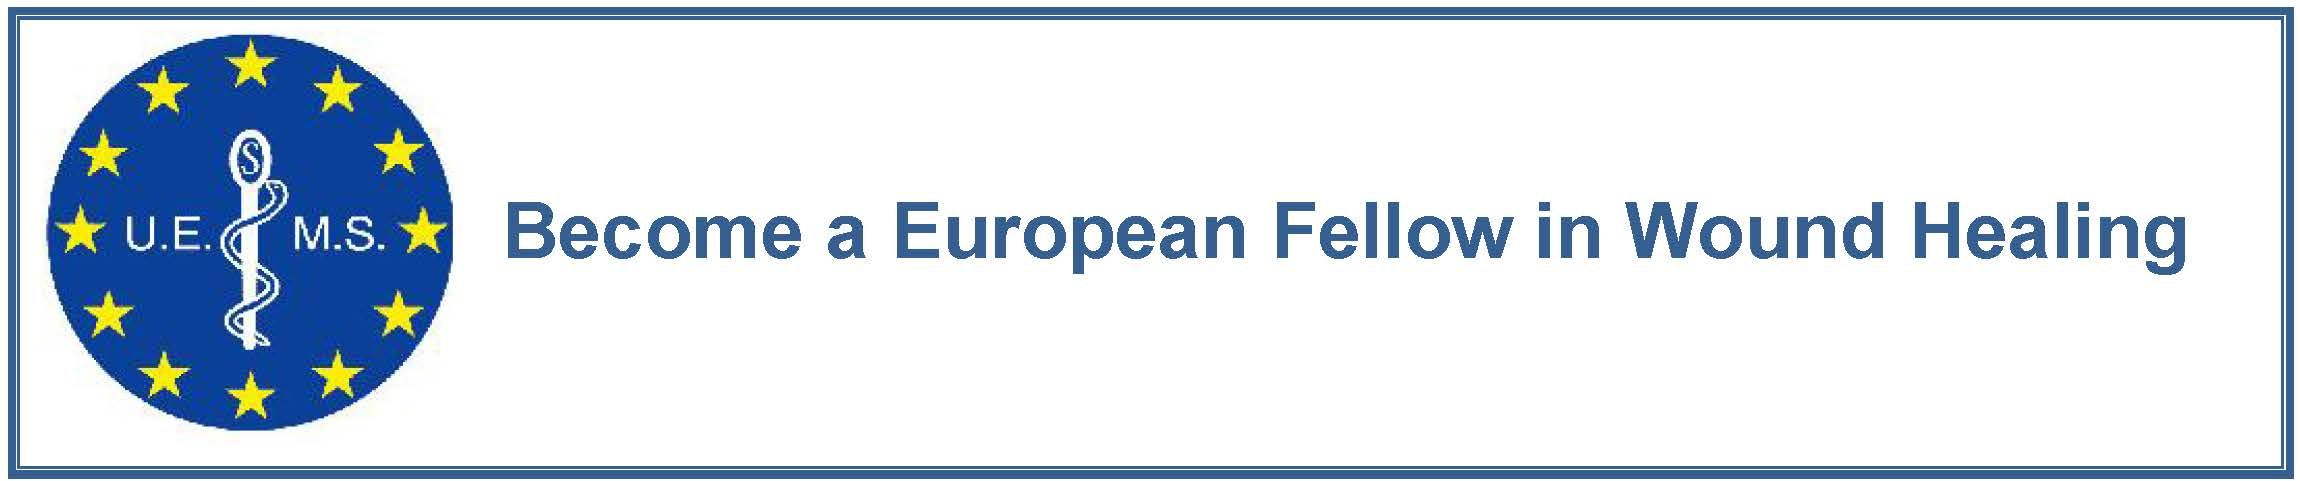 Logo_med_Become_a_European_Fellow_in_Wound_Healing_2.jpg